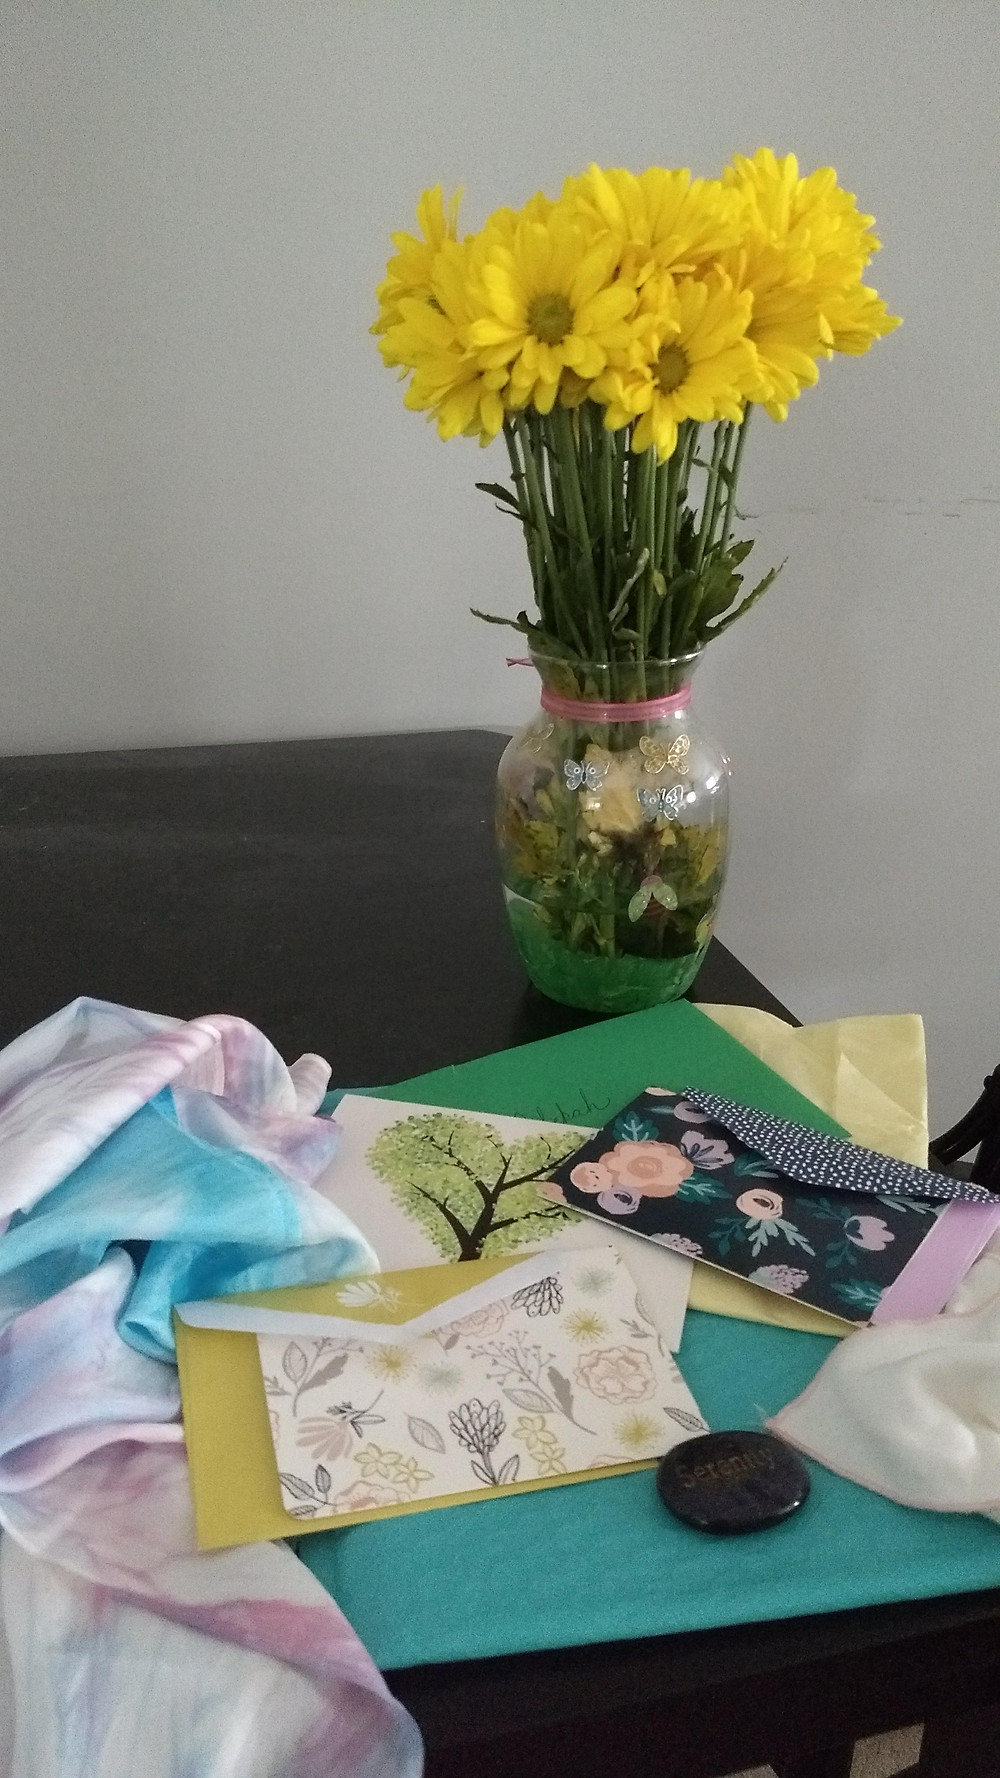 flowers, cards, scarf, miscarriage support